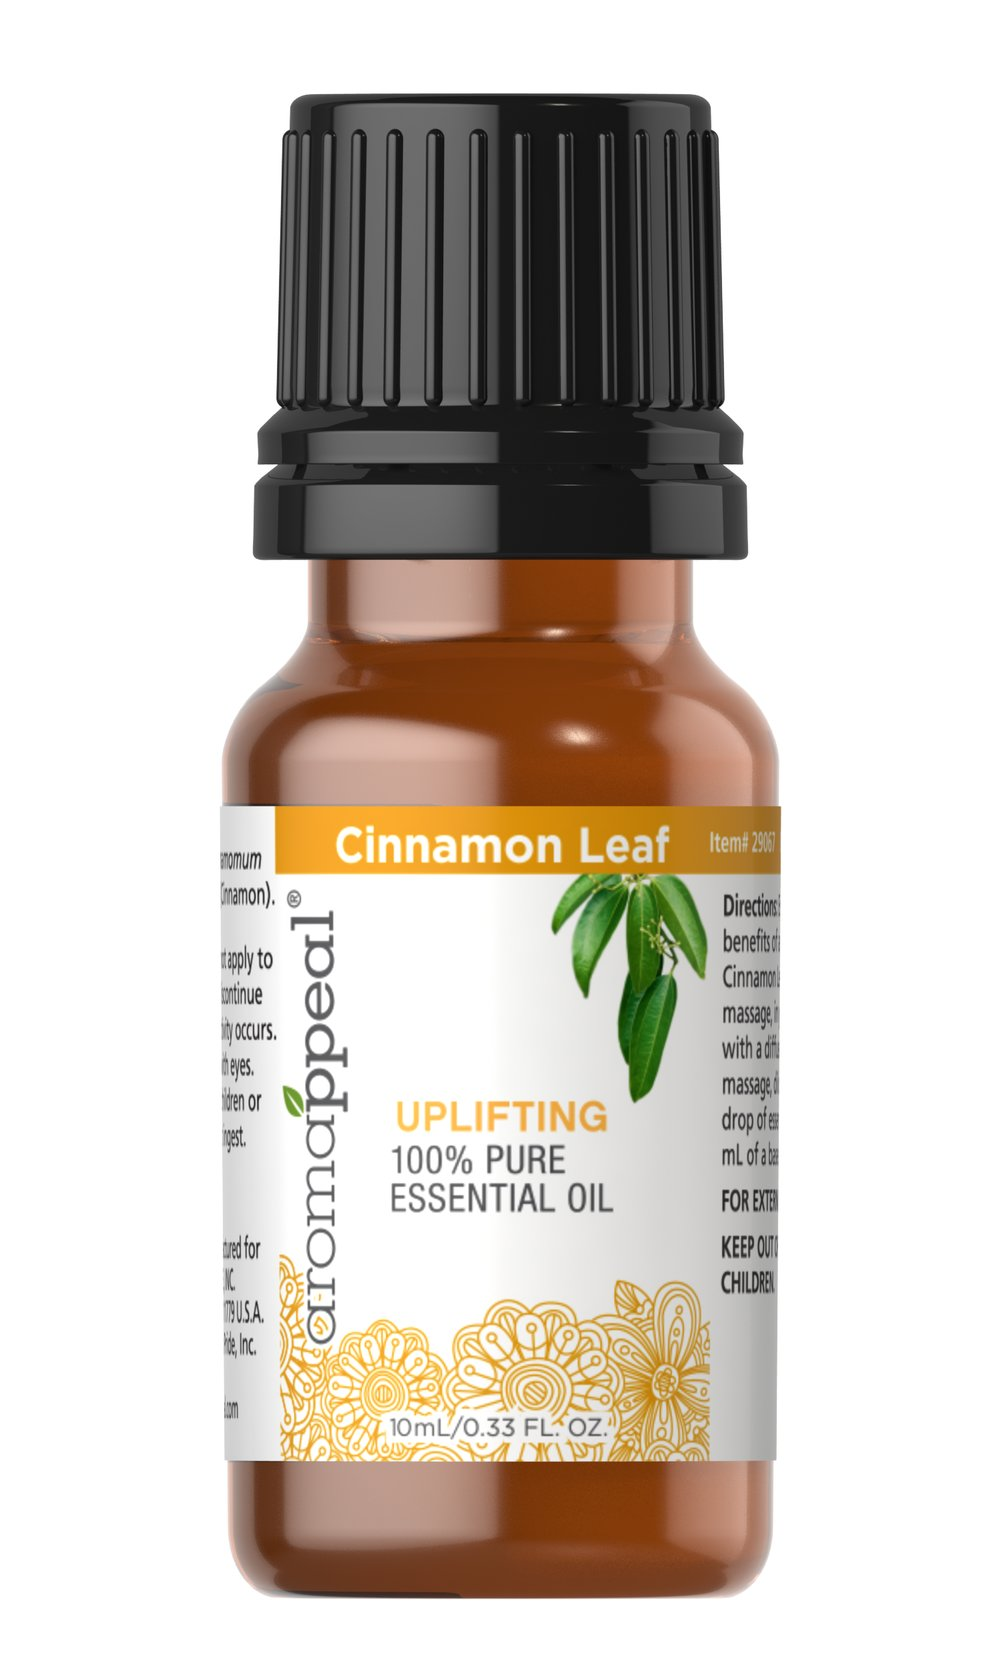 Cinnamon Leaf 100% Pure Essential Oil  10 ml Oil  $10.99